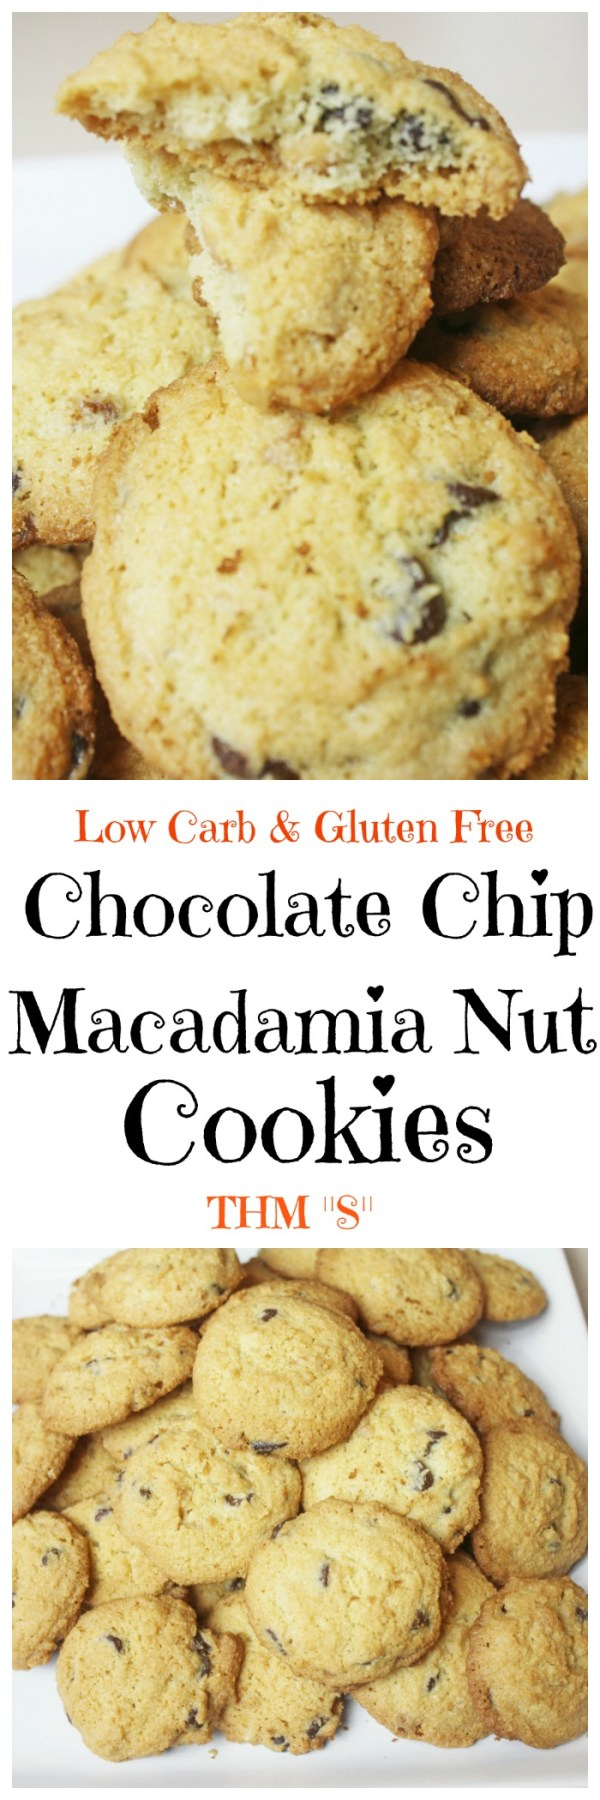 Chocolate Chip Macadamia Nut Cookies || Low Carb Cookes, Gluten Free, Trim Healthy Mama Cookies, Sugar Free